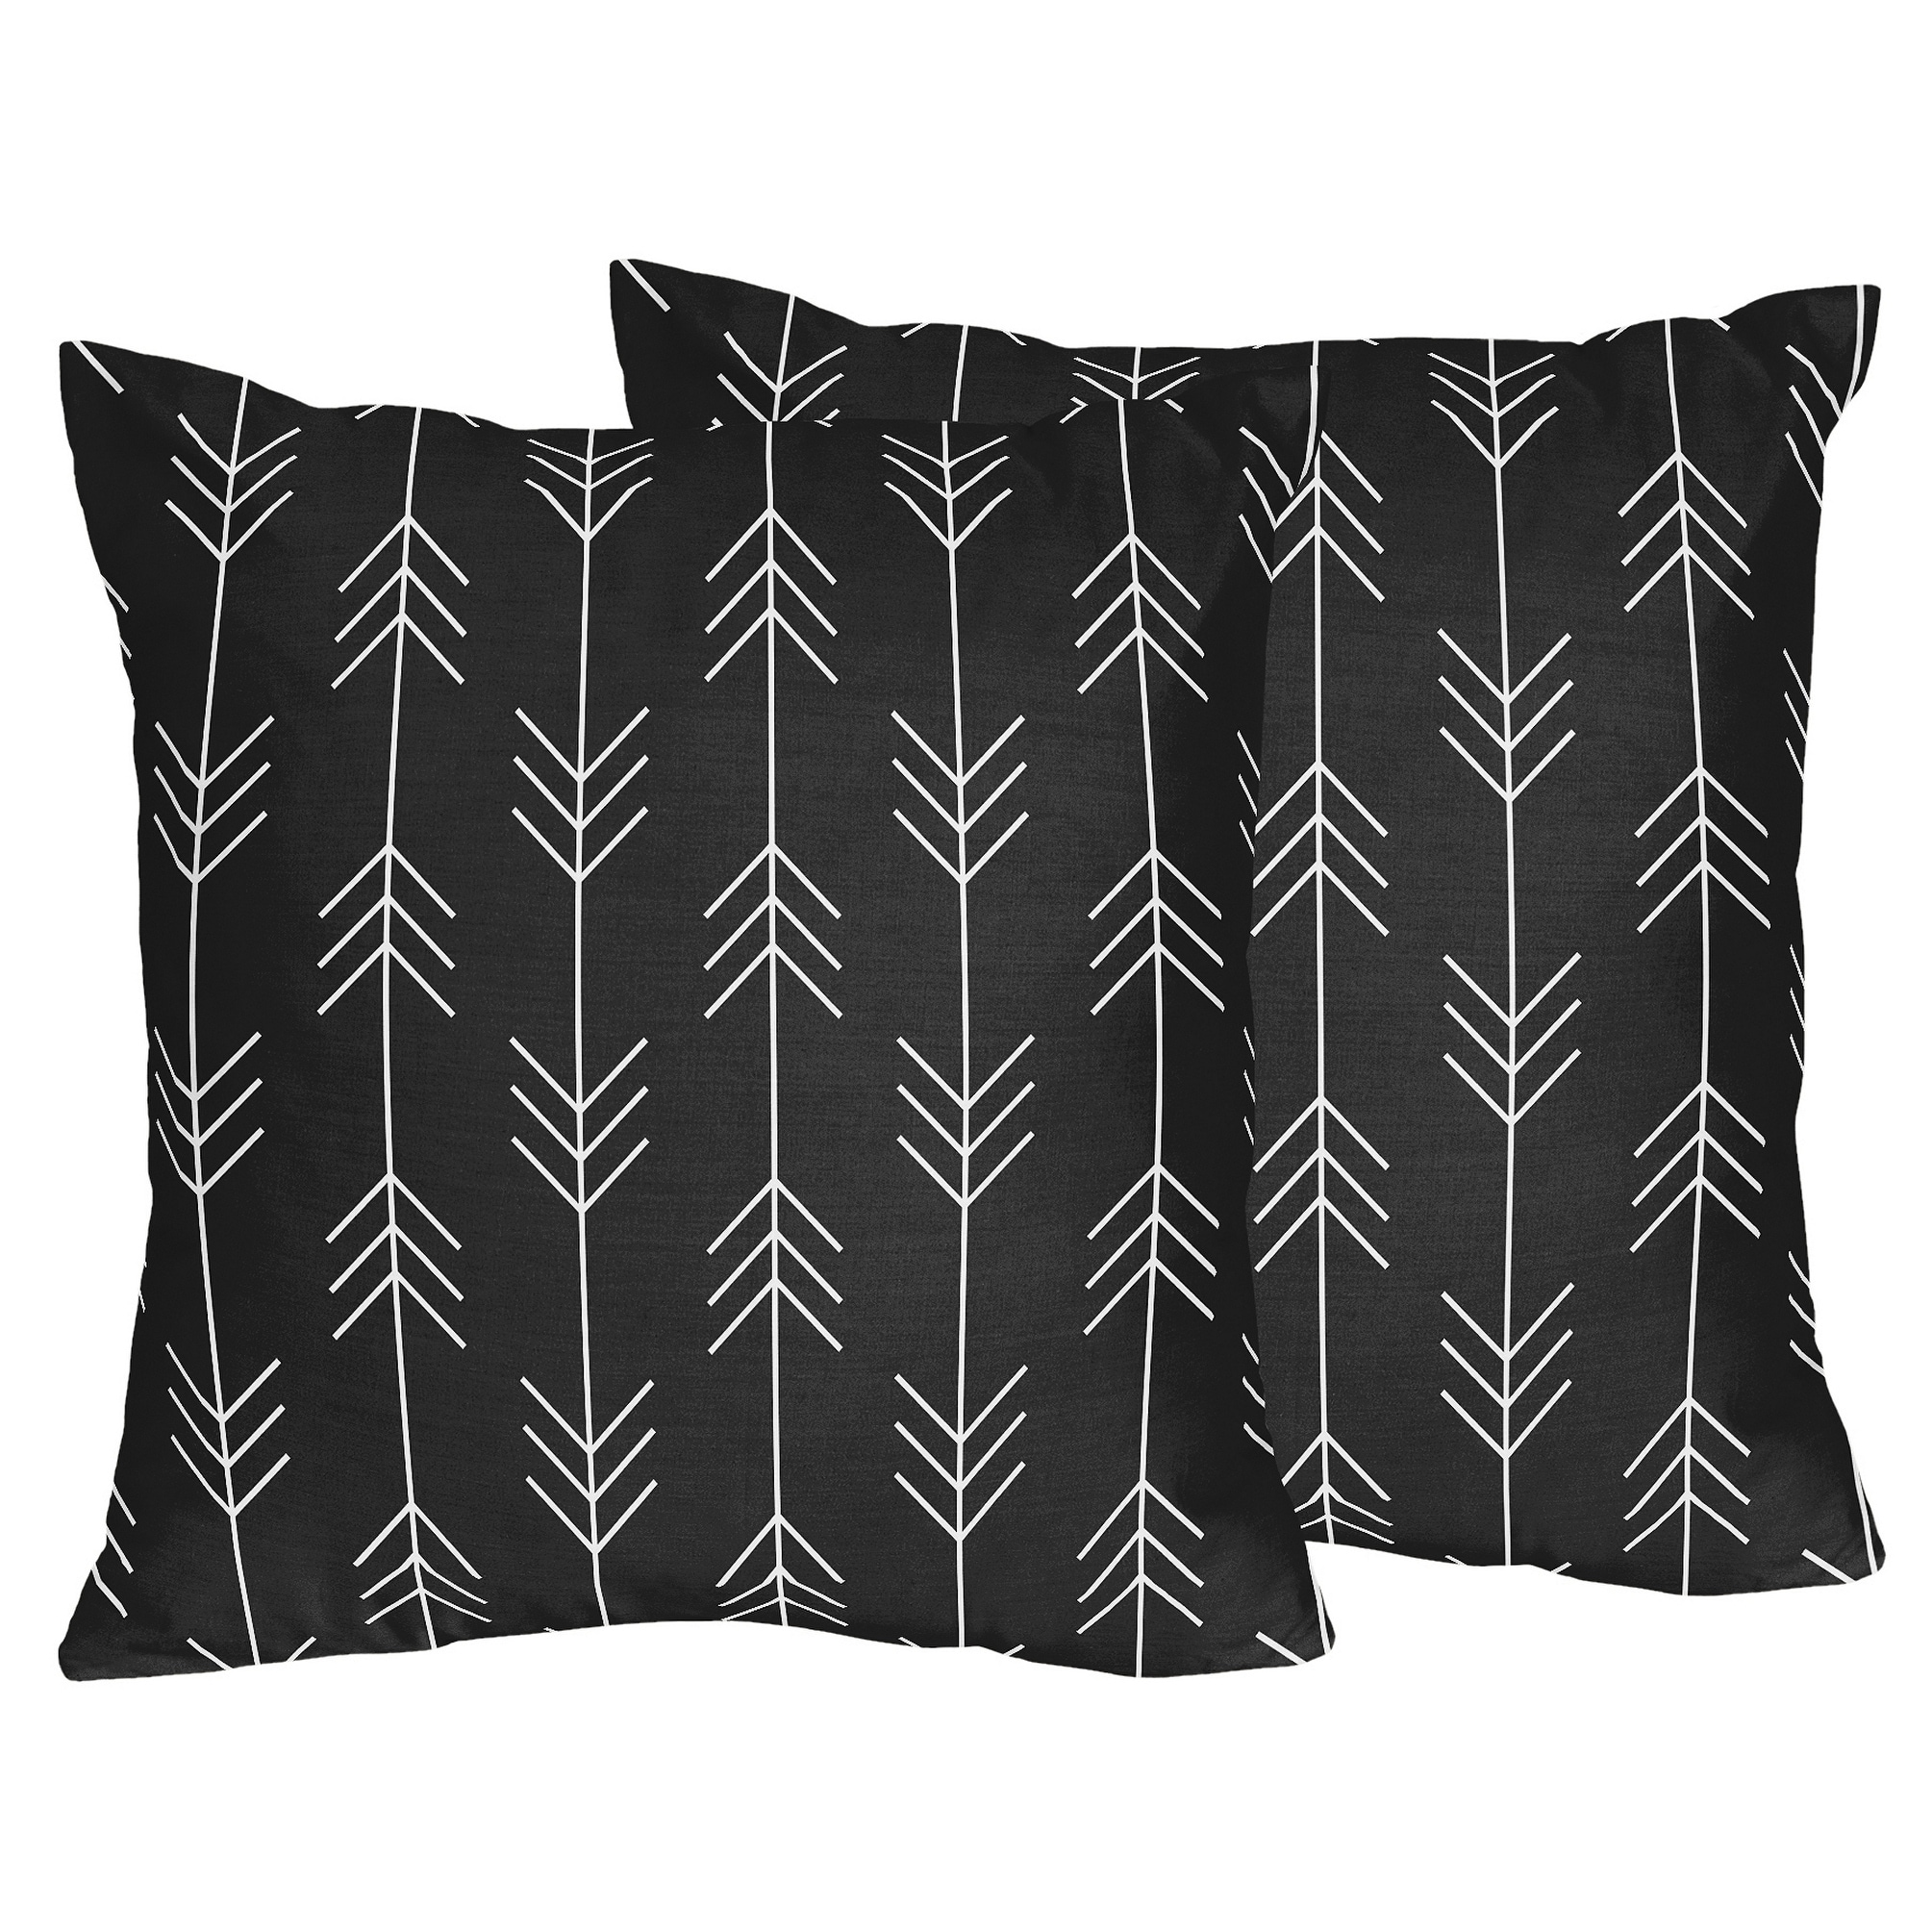 Sweet Jojo Designs Black White Woodland Arrow Rustic Patch Collection 18 Inch Decorative Accent Throw Pillows Set Of 2